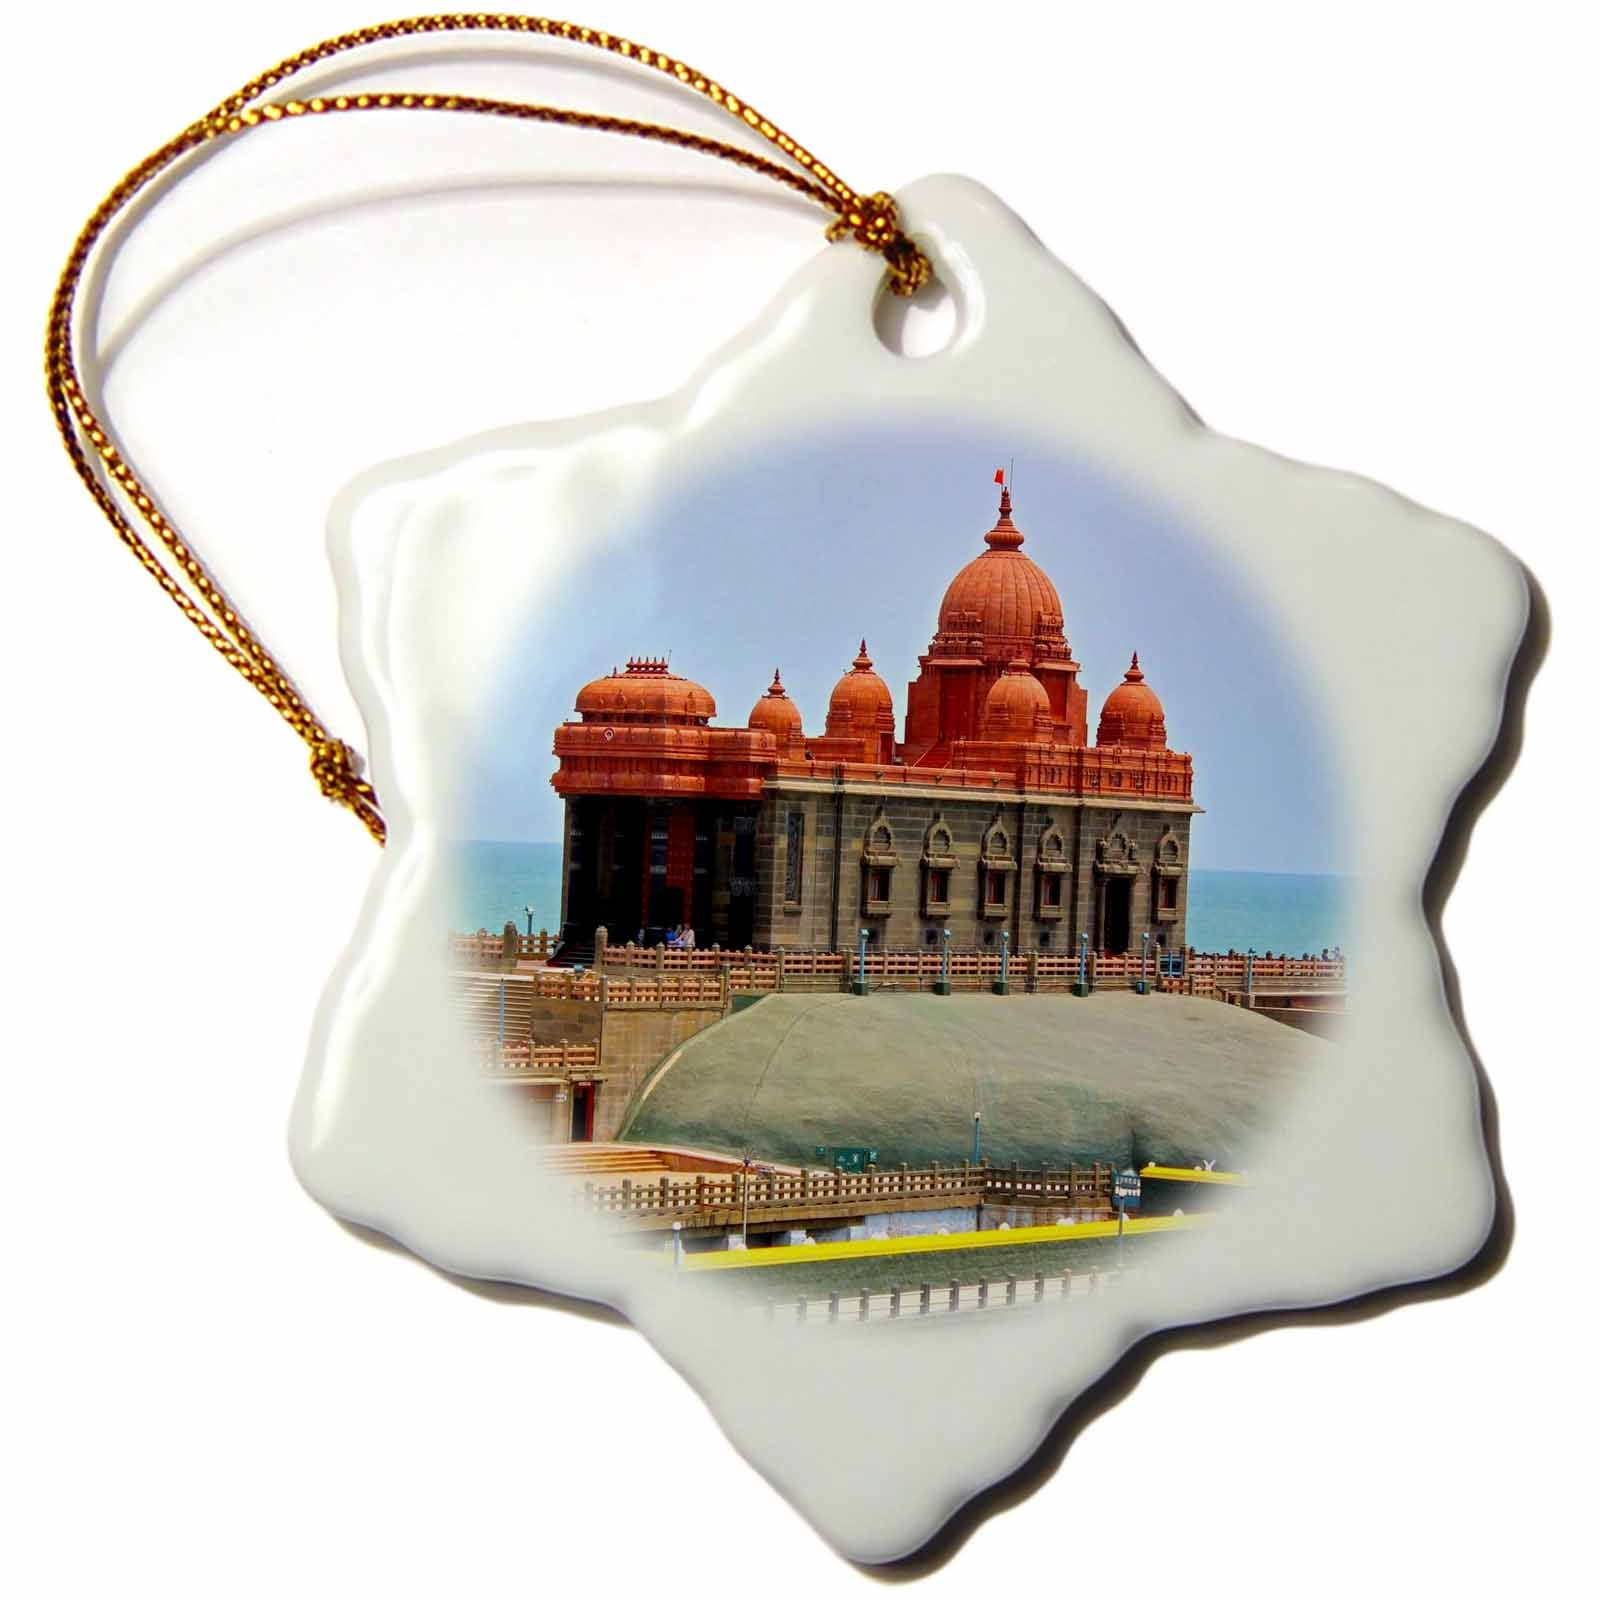 3dRose Cities Of The World - Kanyakumari Temple In India - 3 inch Snowflake Porcelain Ornament (orn_268676_1) by 3dRose (Image #1)